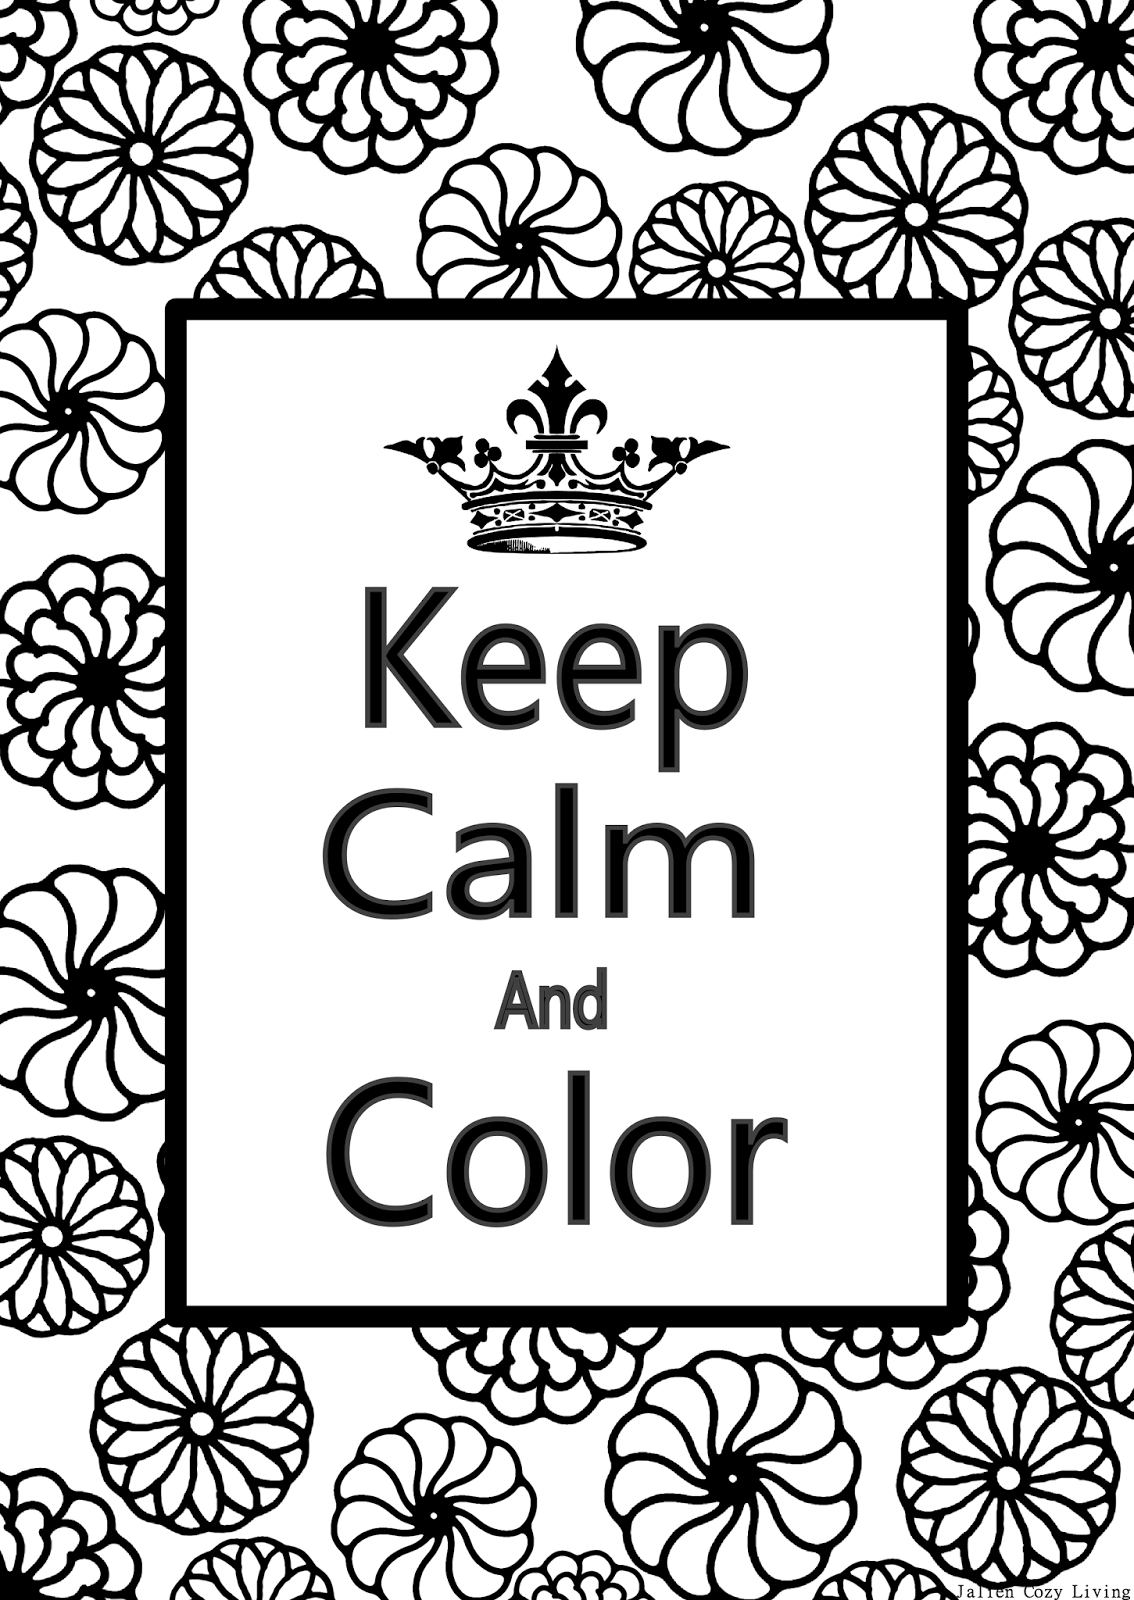 Jalien Cozy Living: Keep Calm And Color!